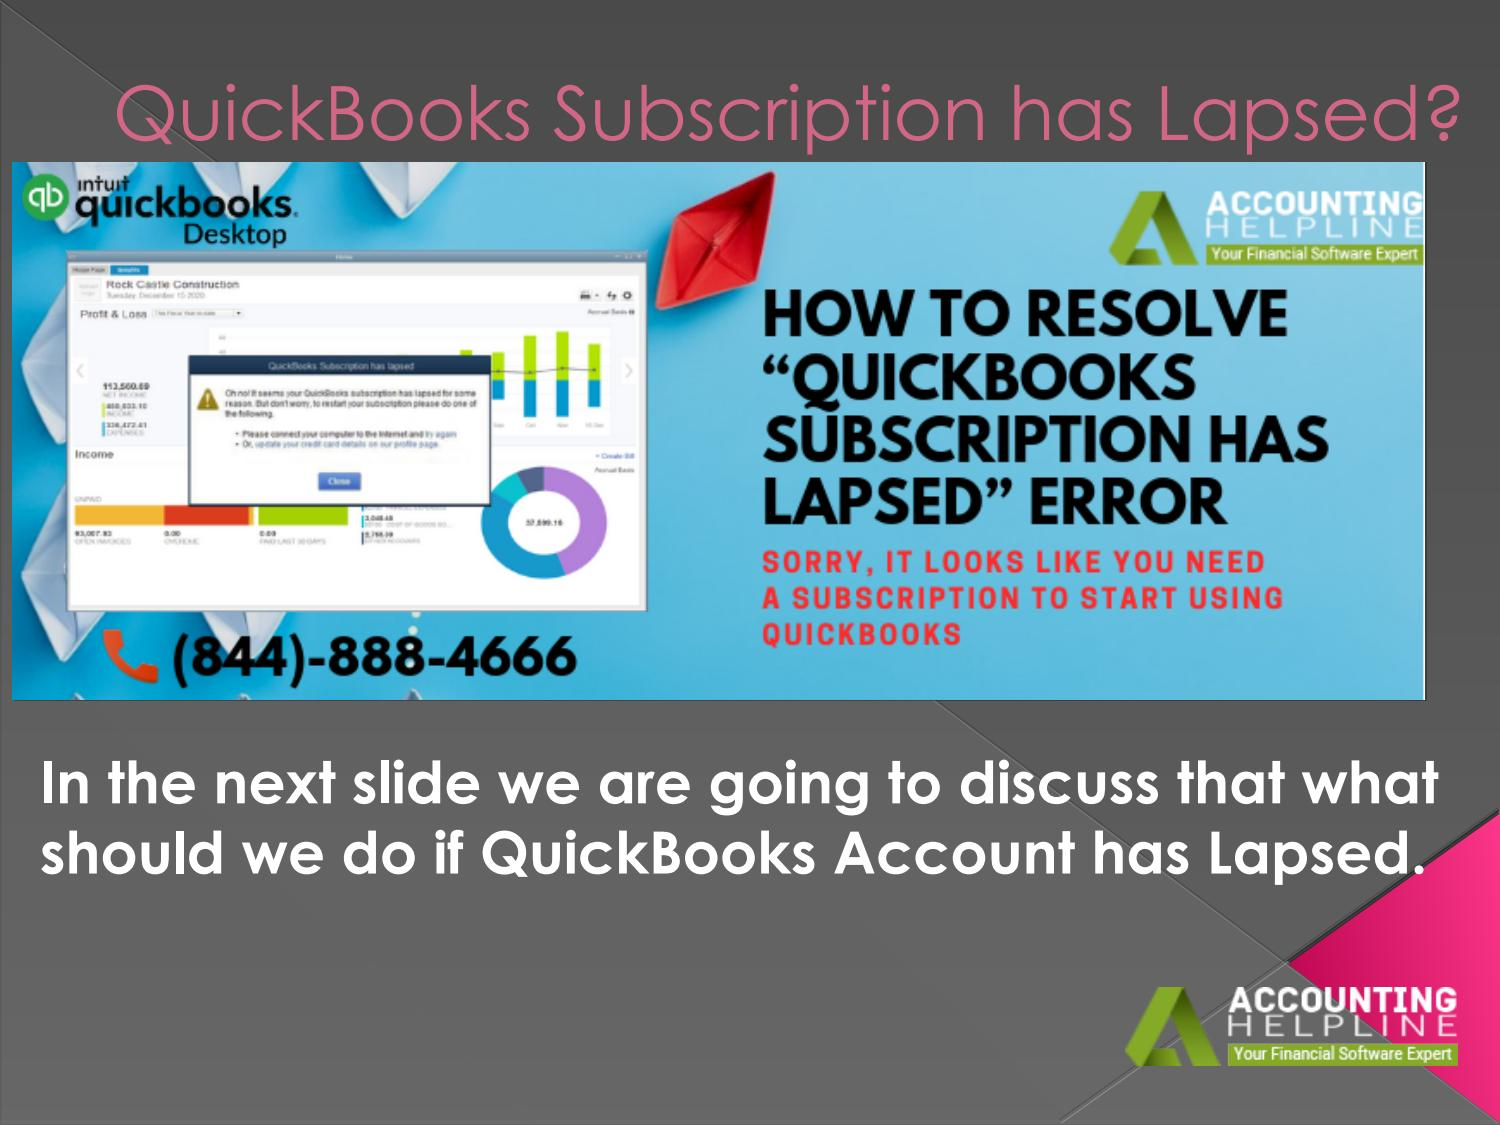 QuickBooks subscription has lapsed? Easy Steps to Fix It by